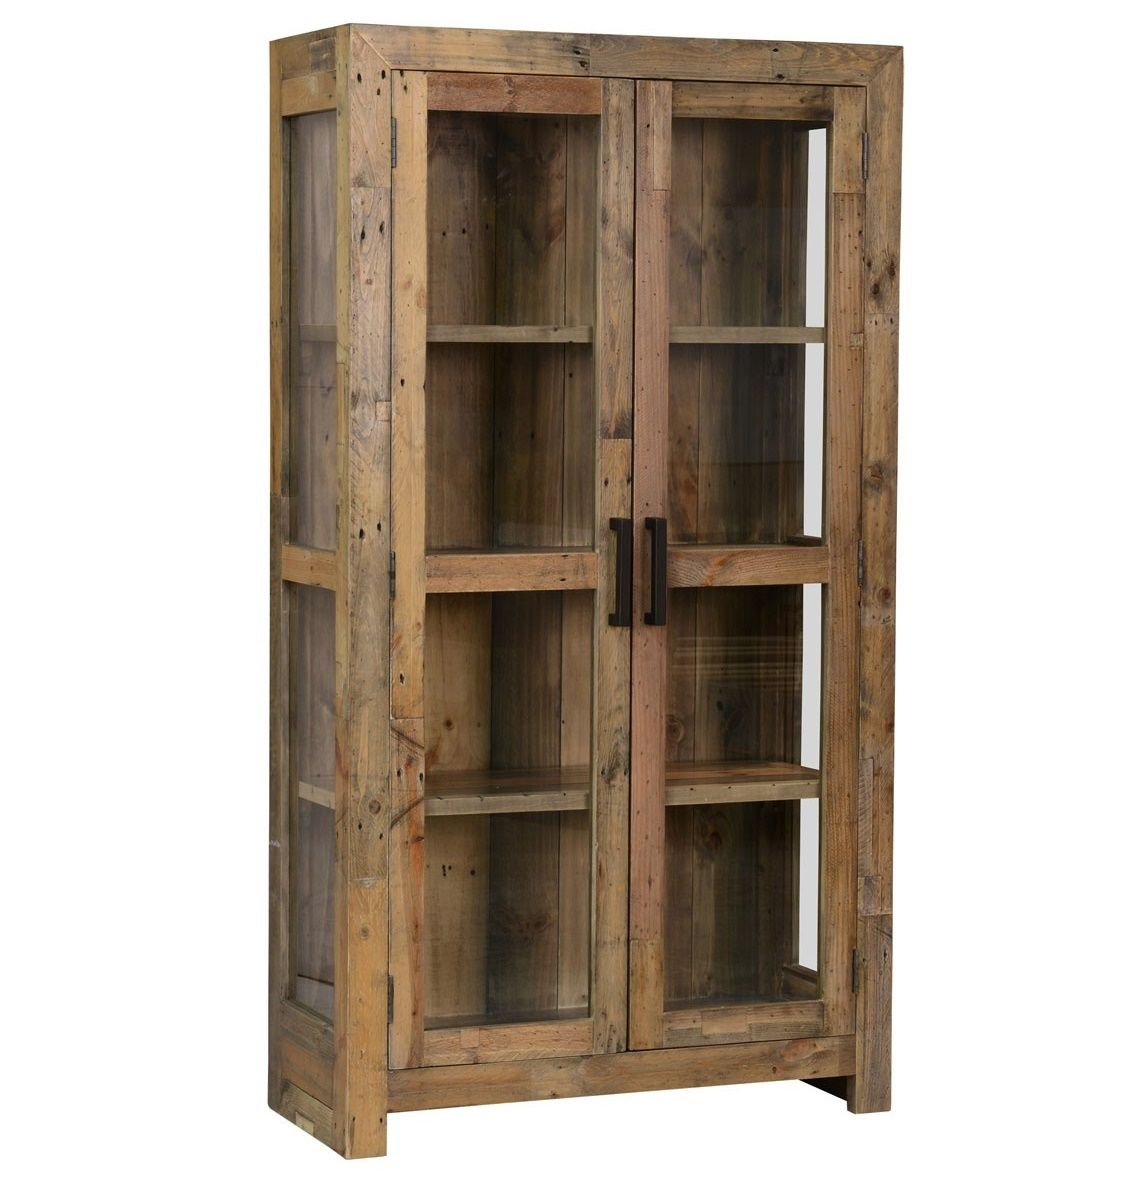 Large Antique Oak And Glass Display Cabinet From A Unique